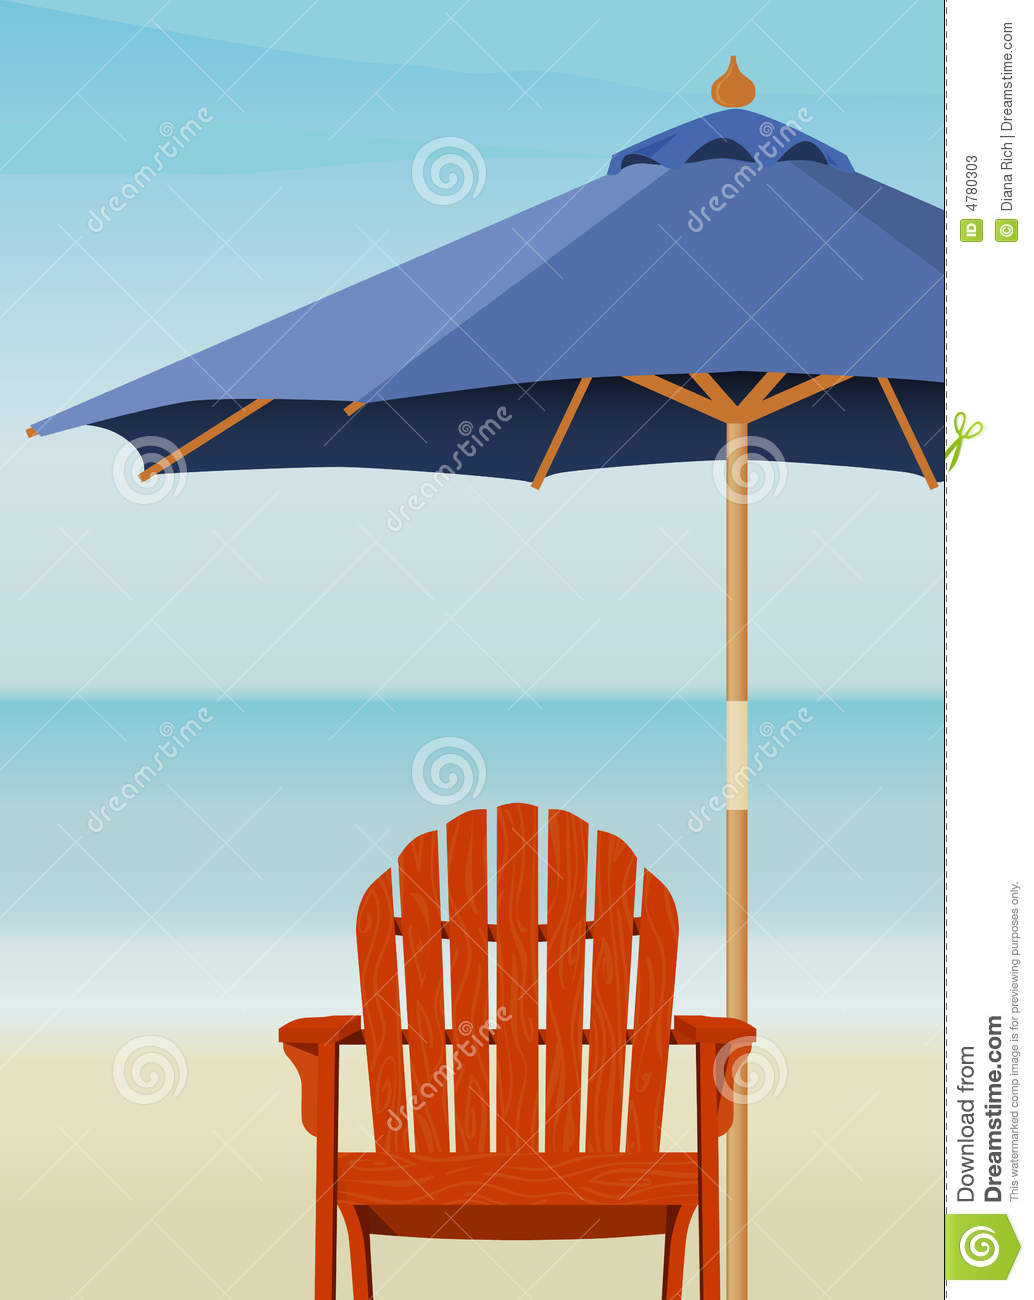 adirondack chair at beach stock vector. illustration of sandy - 4780303